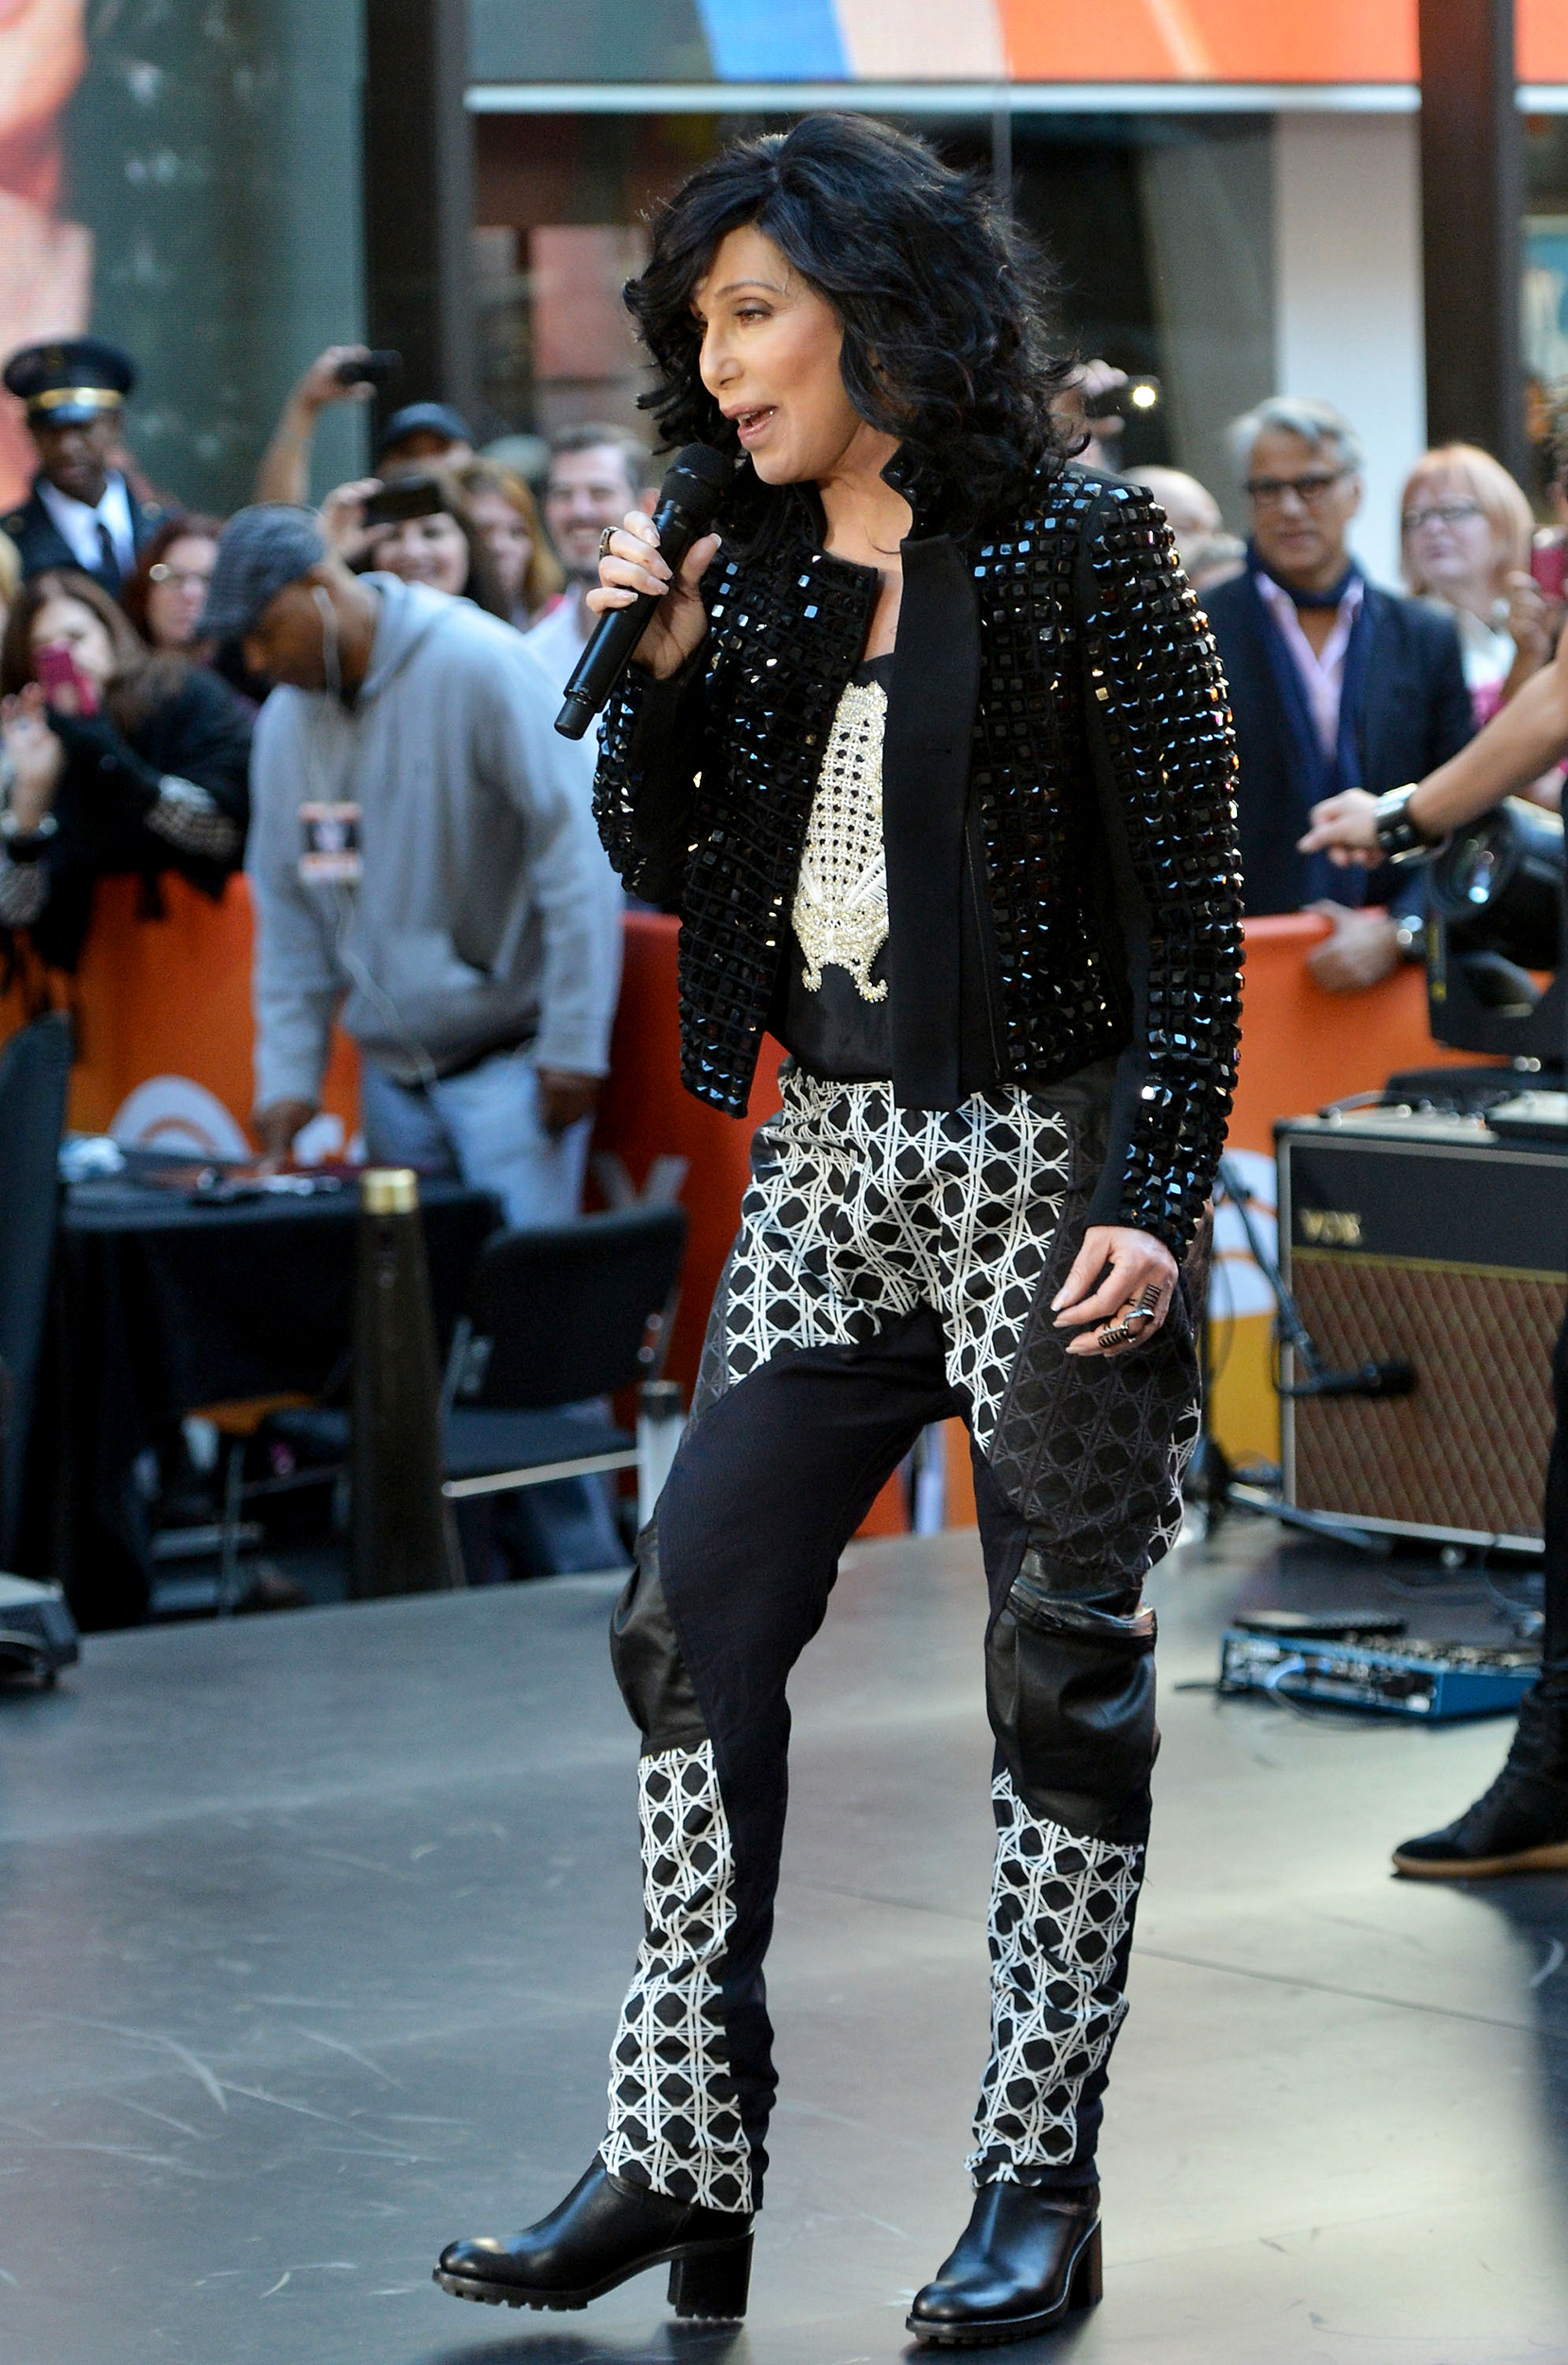 See Cher S Style Evolution From Hippie Ingenue To Fashion Icon